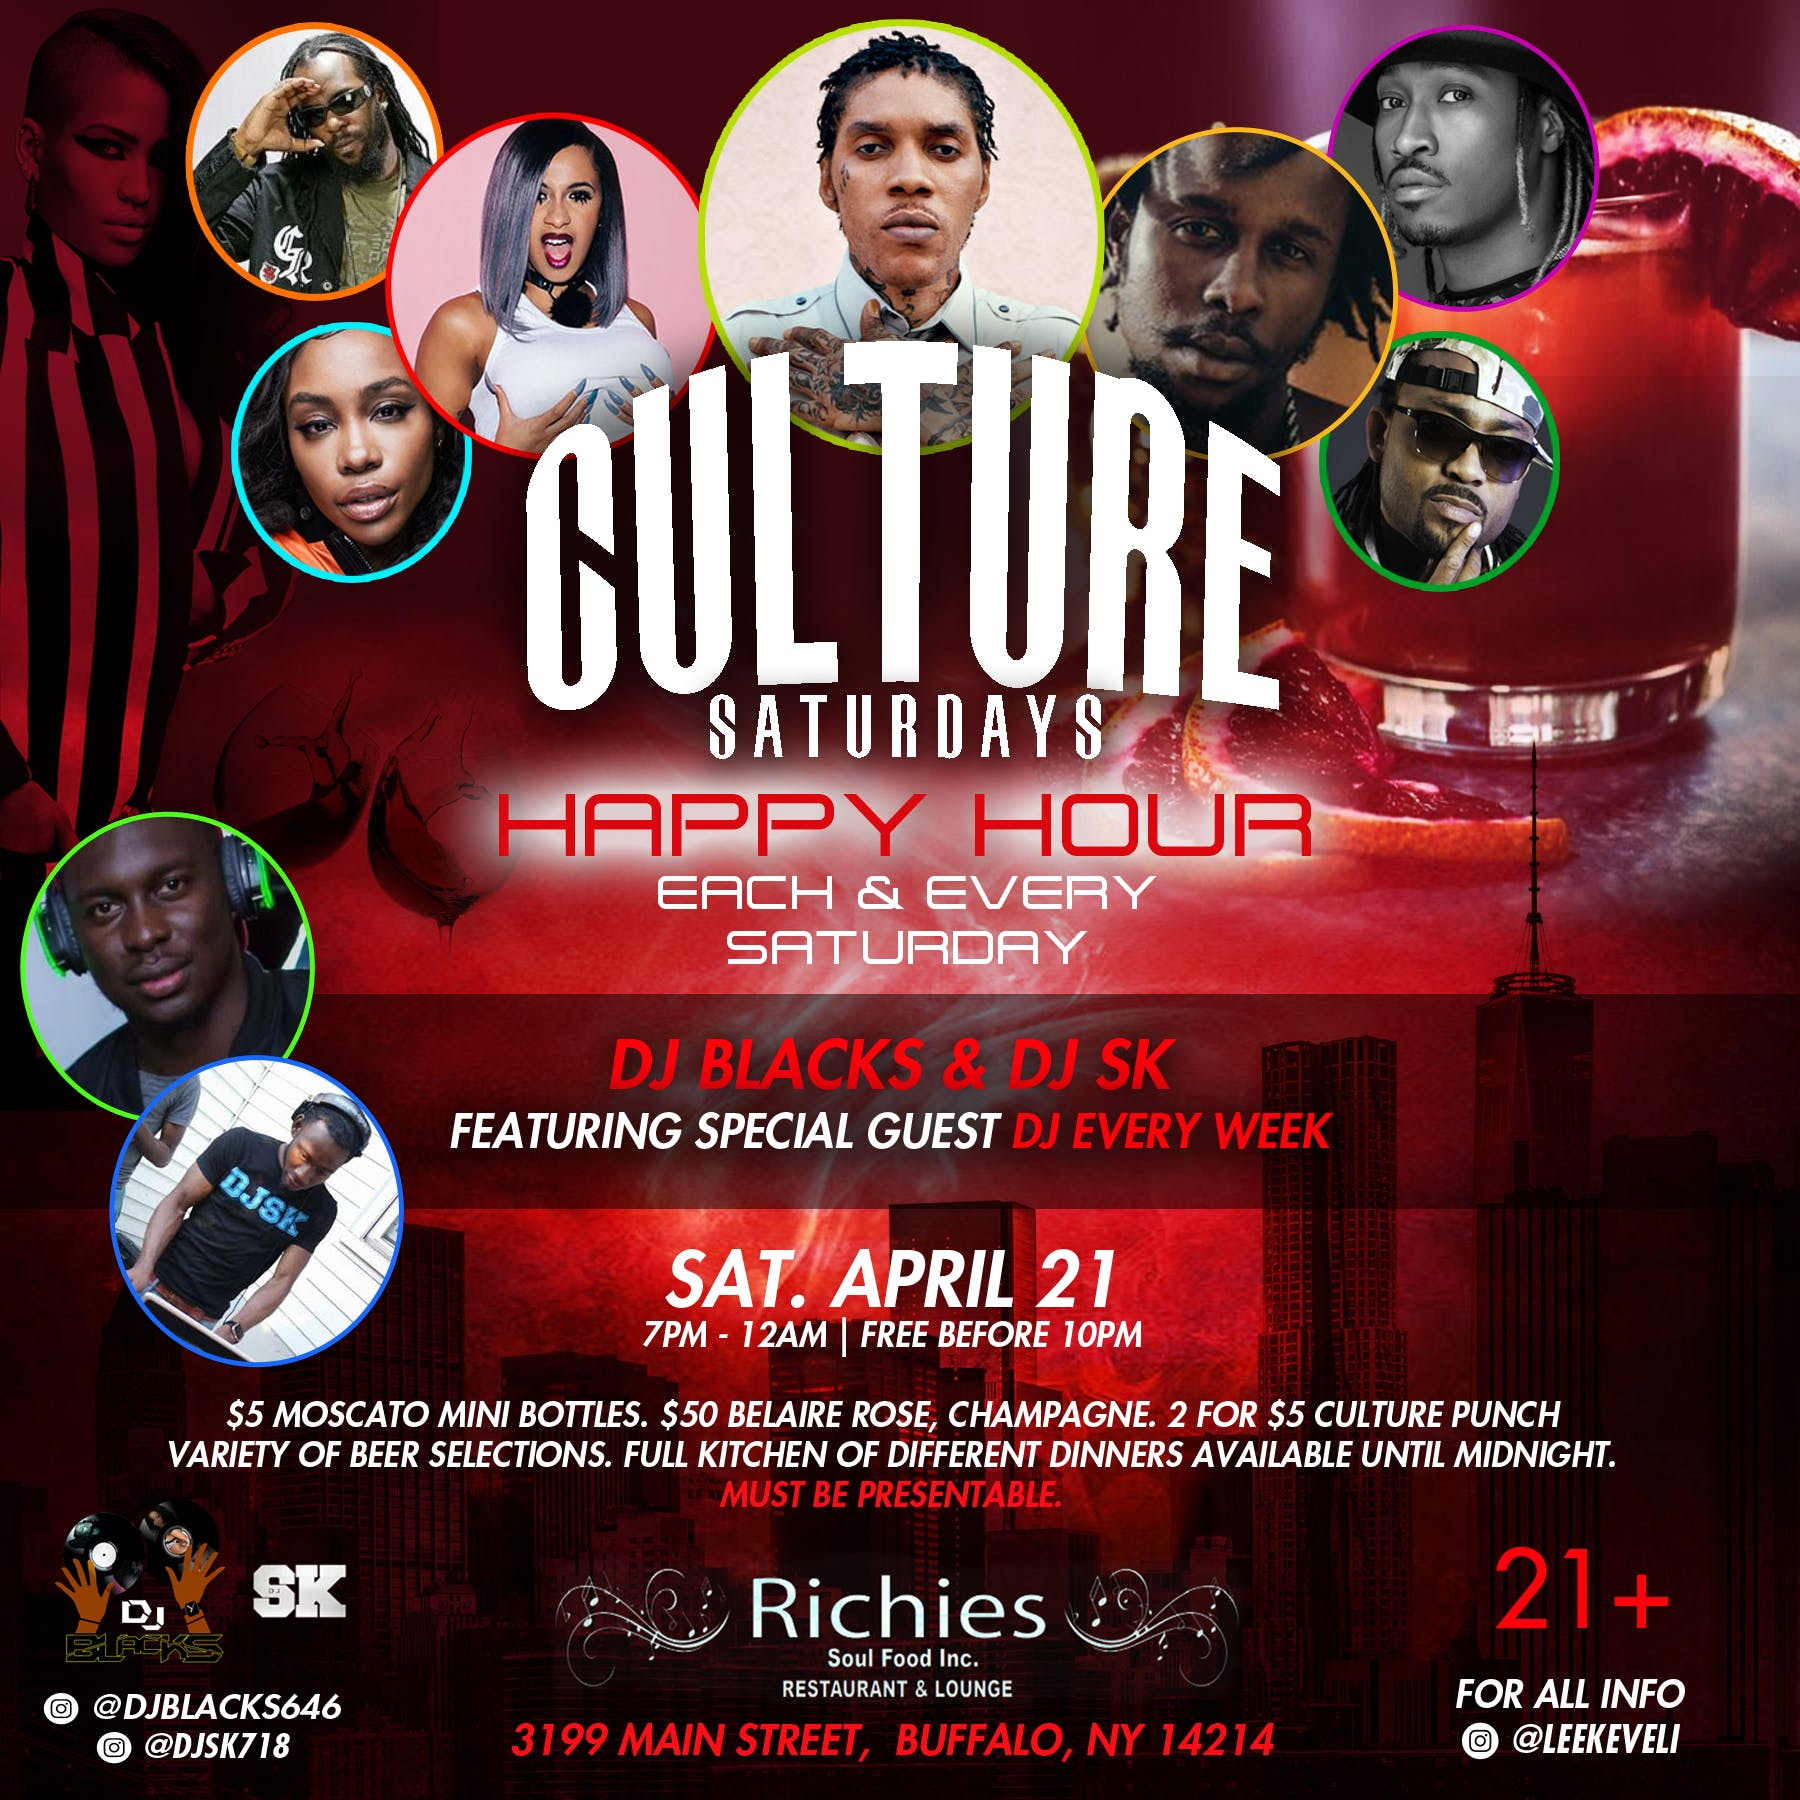 Culture saturdays (happy hour)